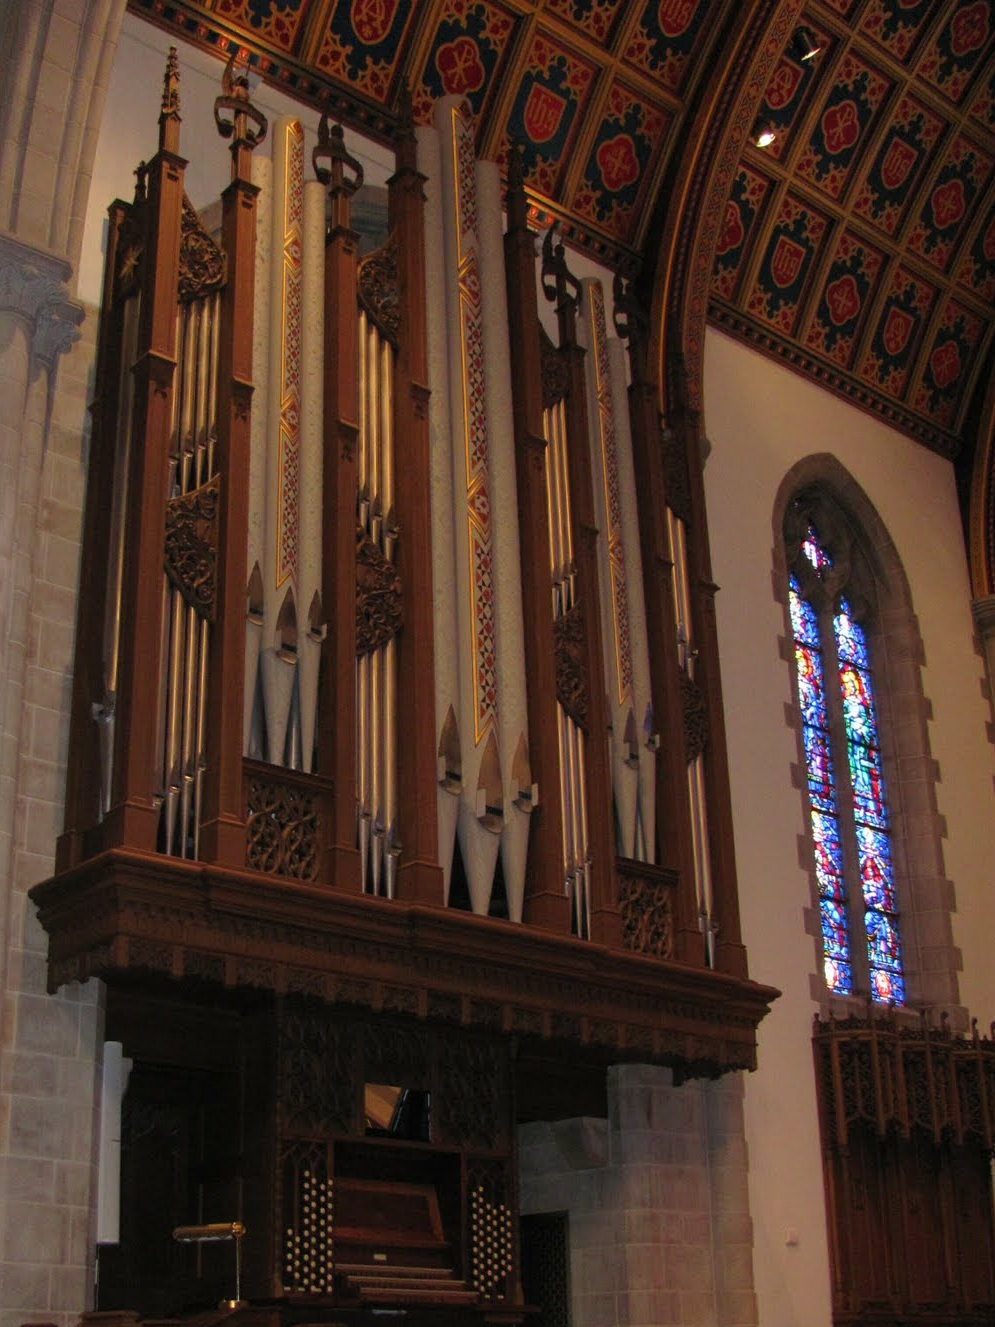 Andover Organ Co. Opus 114 (2007), Christ Lutheran Church